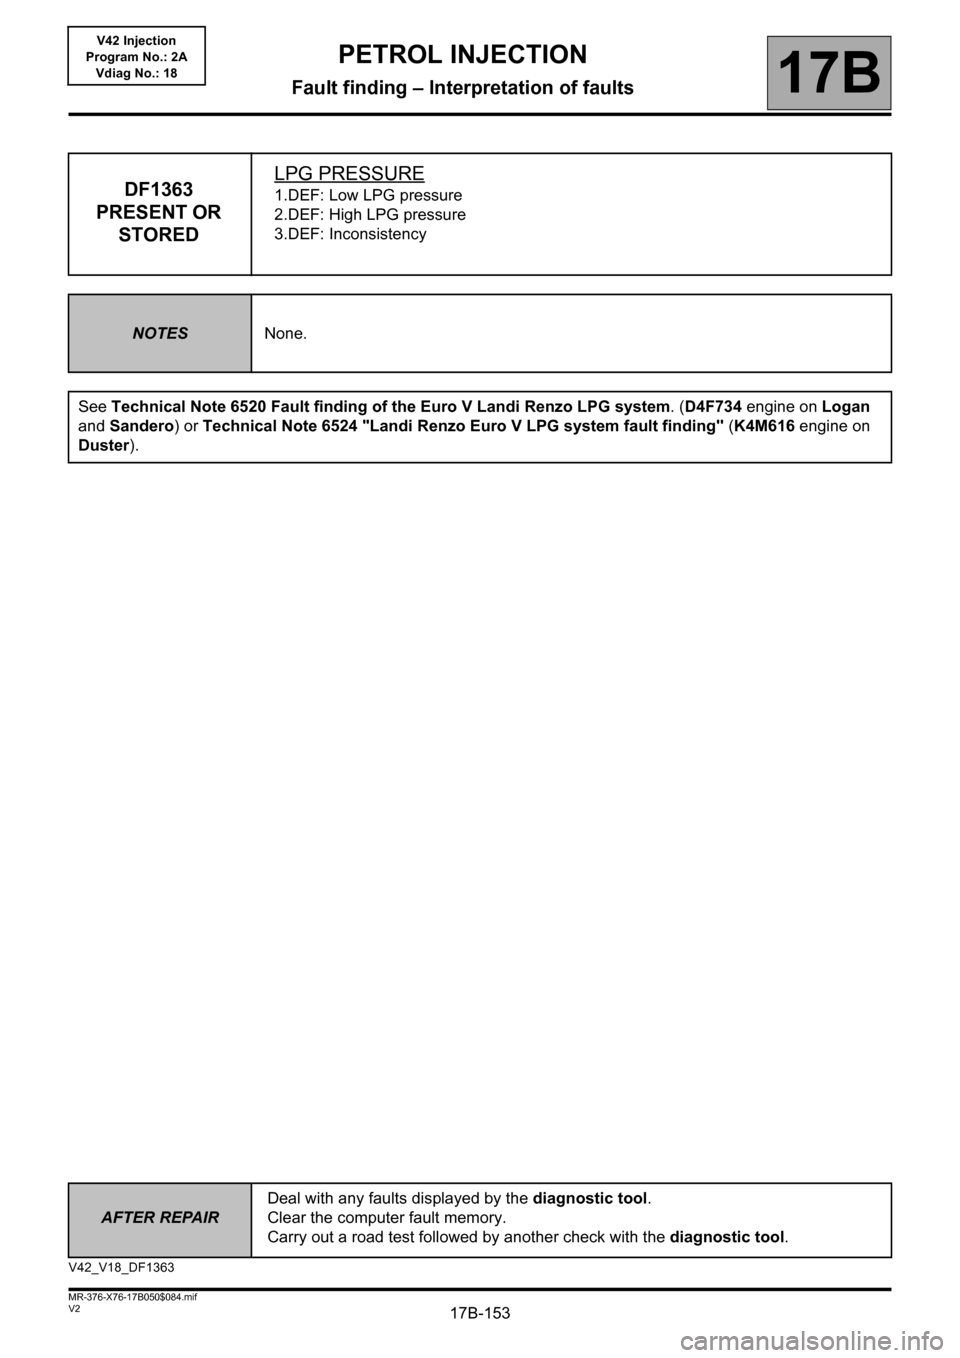 RENAULT KANGOO 2013 X61 / 2.G Petrol V42 Injection Workshop Manual, Page 153